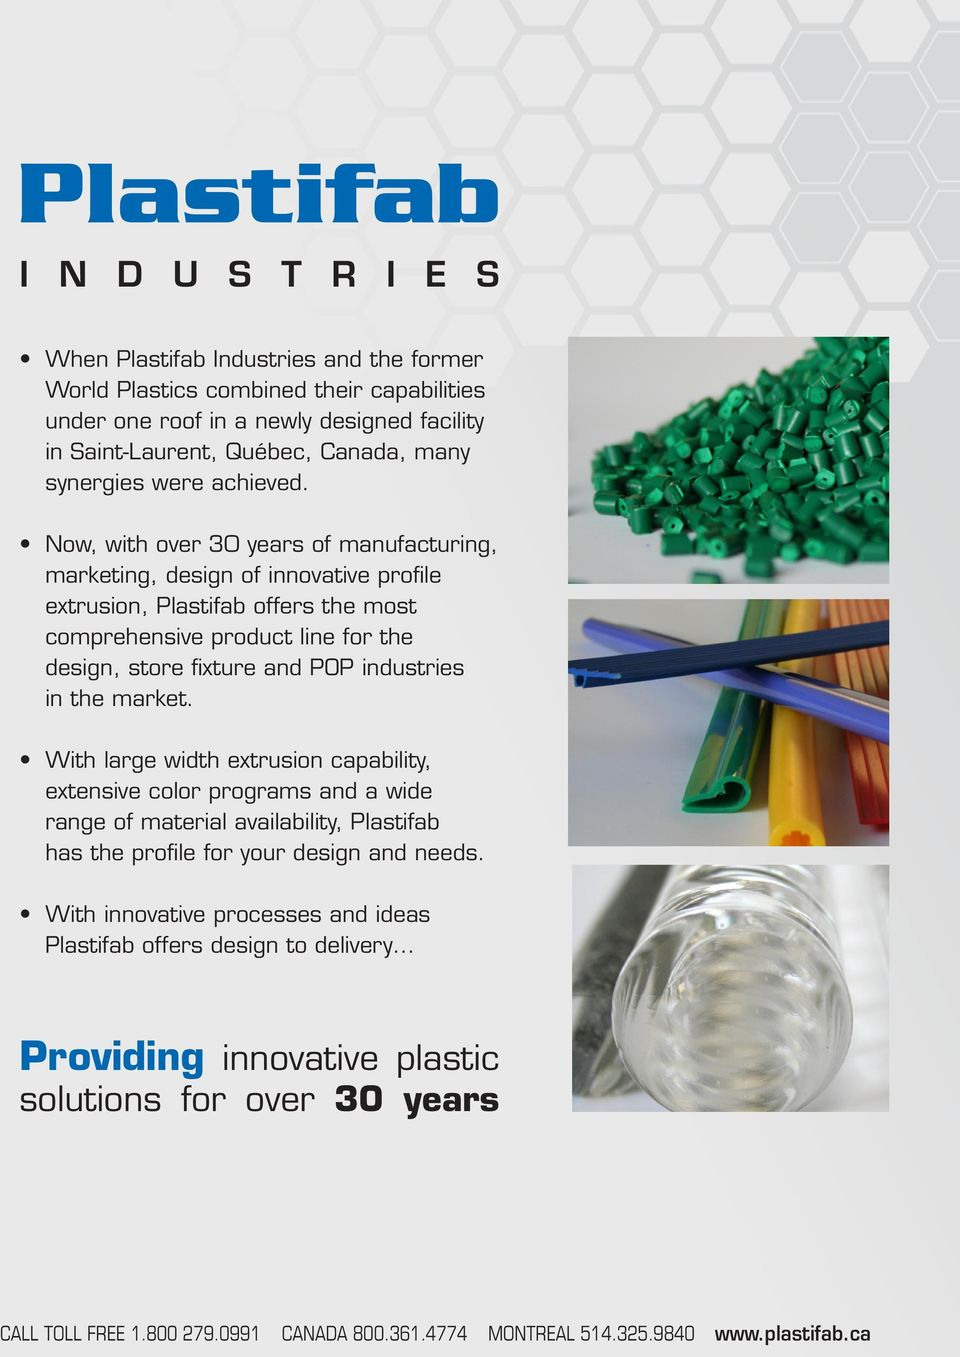 Now, with over 30 years of manufacturing, marketing, design of innovative profile extrusion, Plastifab offers the most comprehensive product line for the design, store fixture